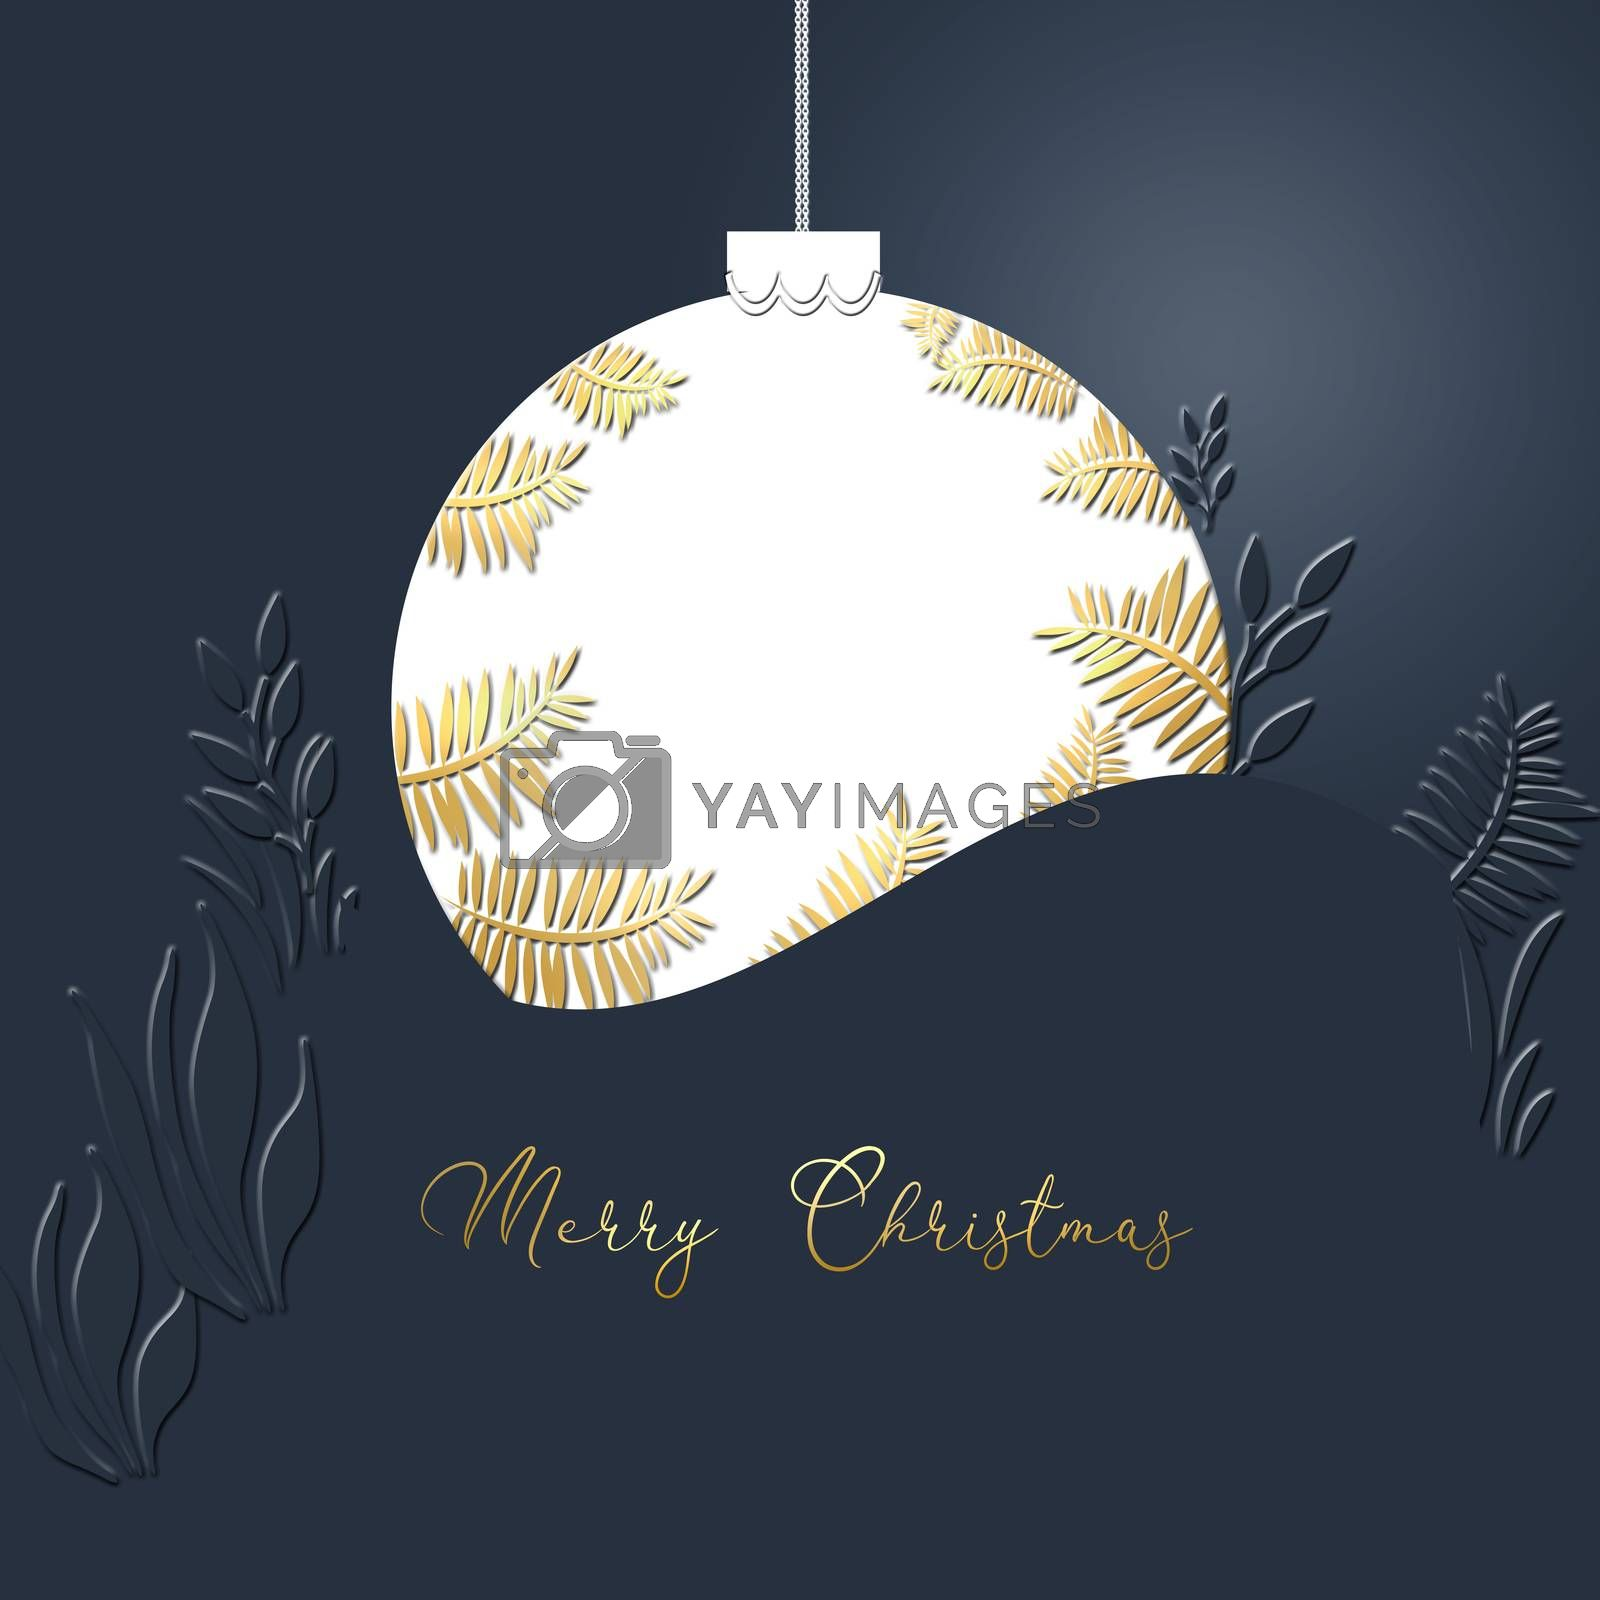 White Christmas ball made of gold leaves on blue background. Minimalist card. Text Merry Christmas. 3D illustration